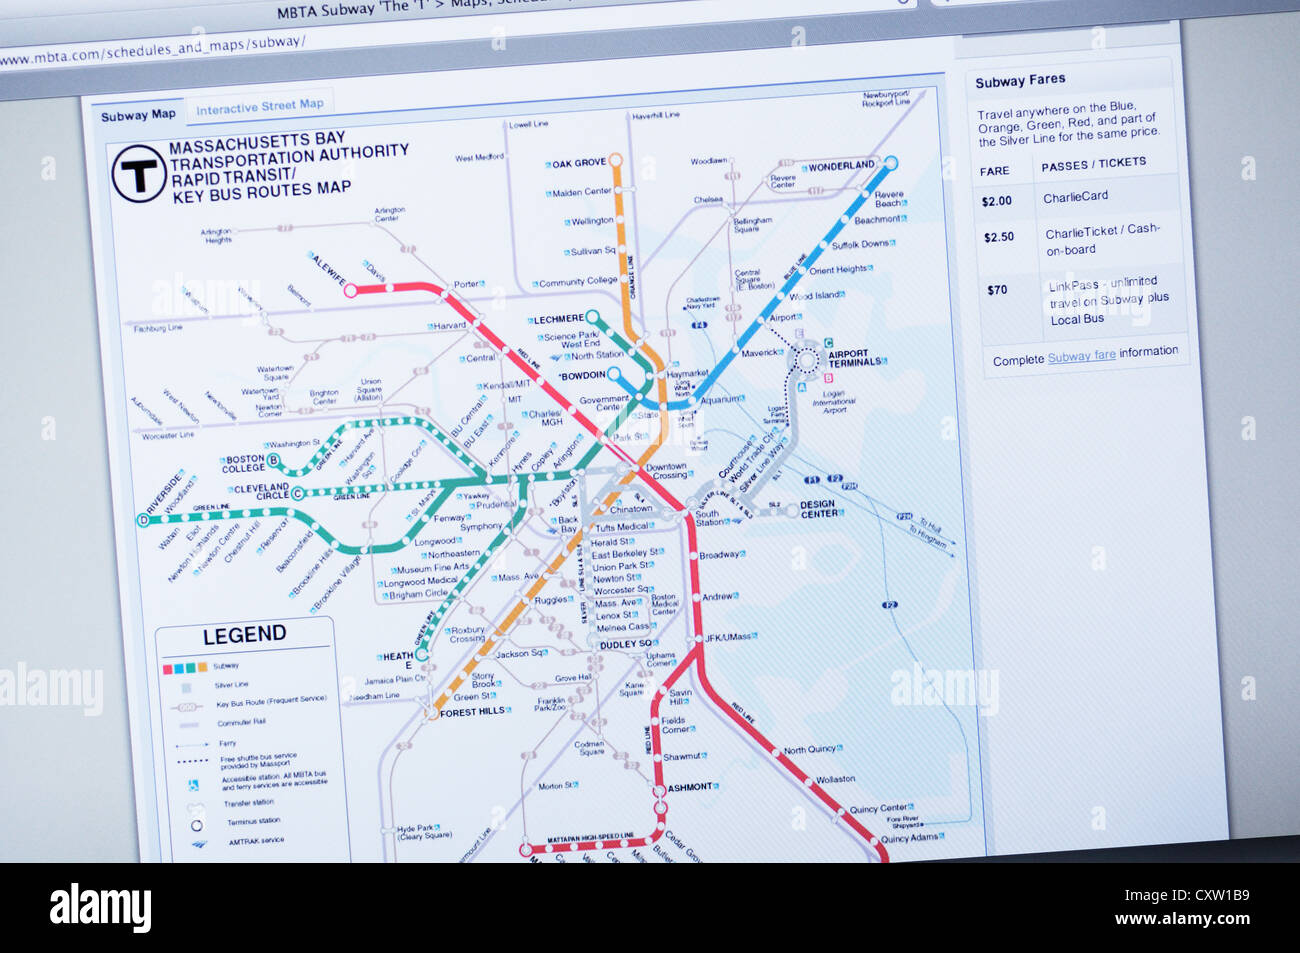 Alewife Subway Map.Subway Map Website Stock Photos Subway Map Website Stock Images